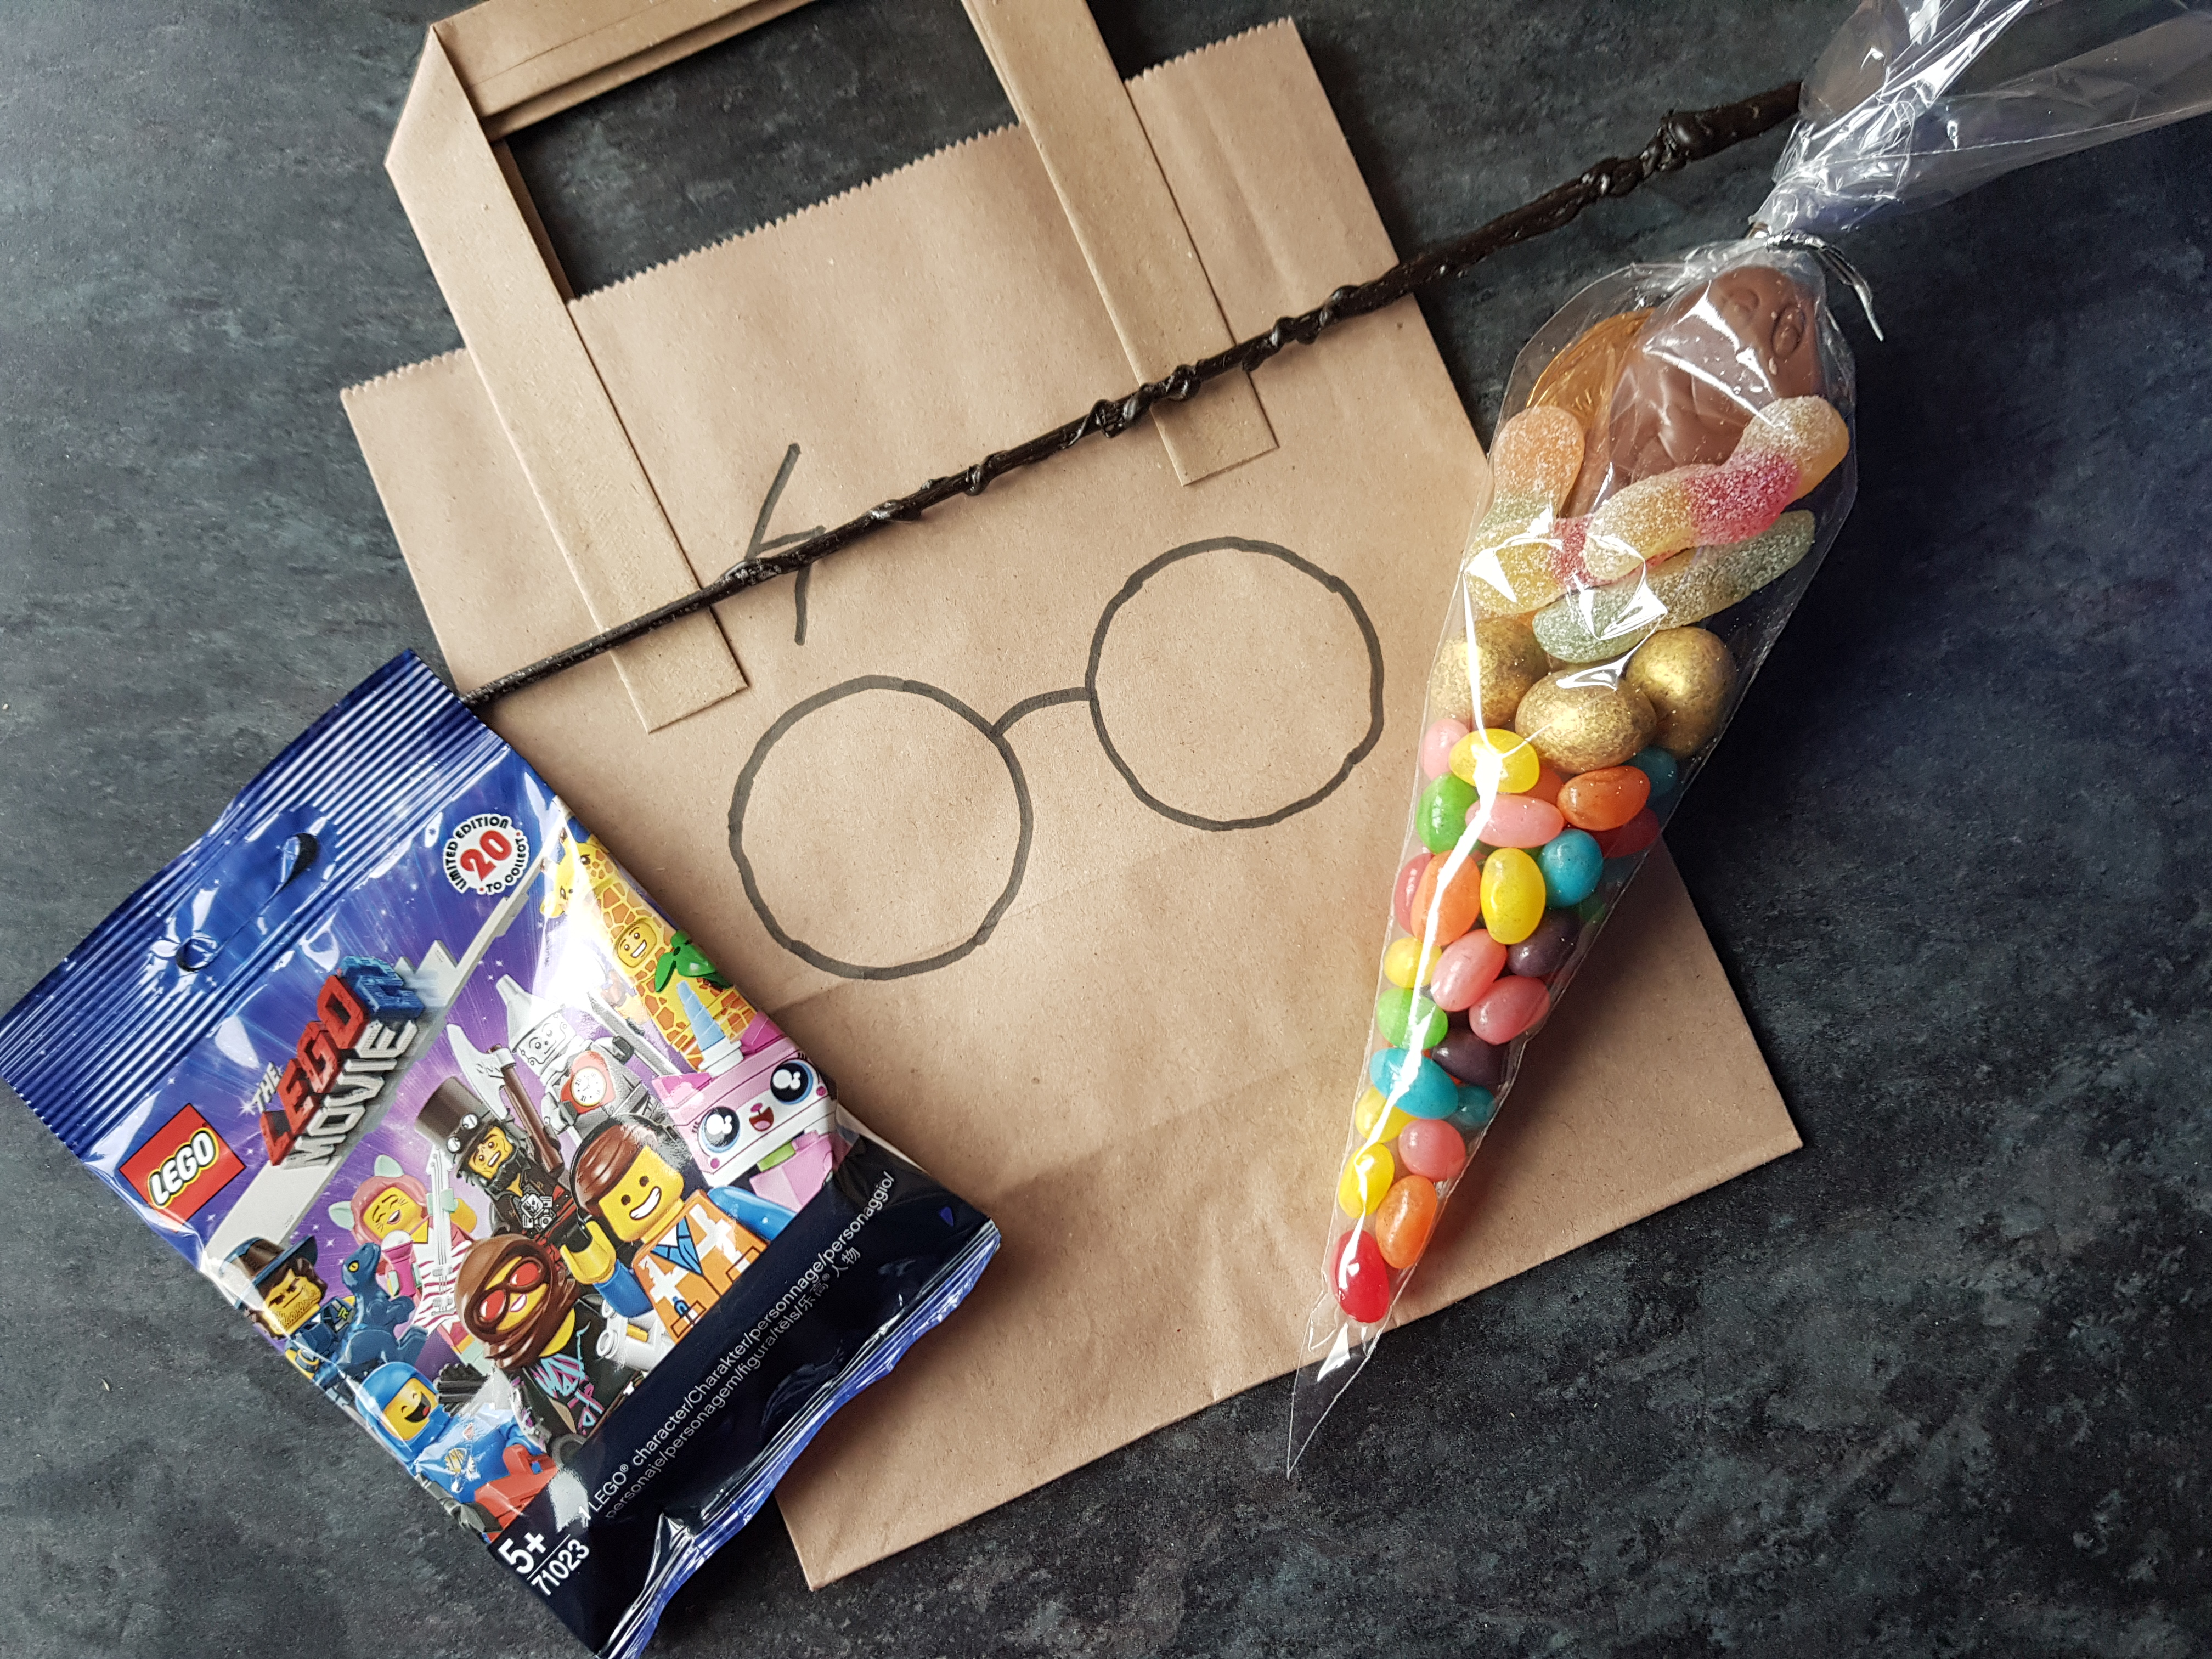 Party bag contents, Lego minifigure, wand, sweet cone